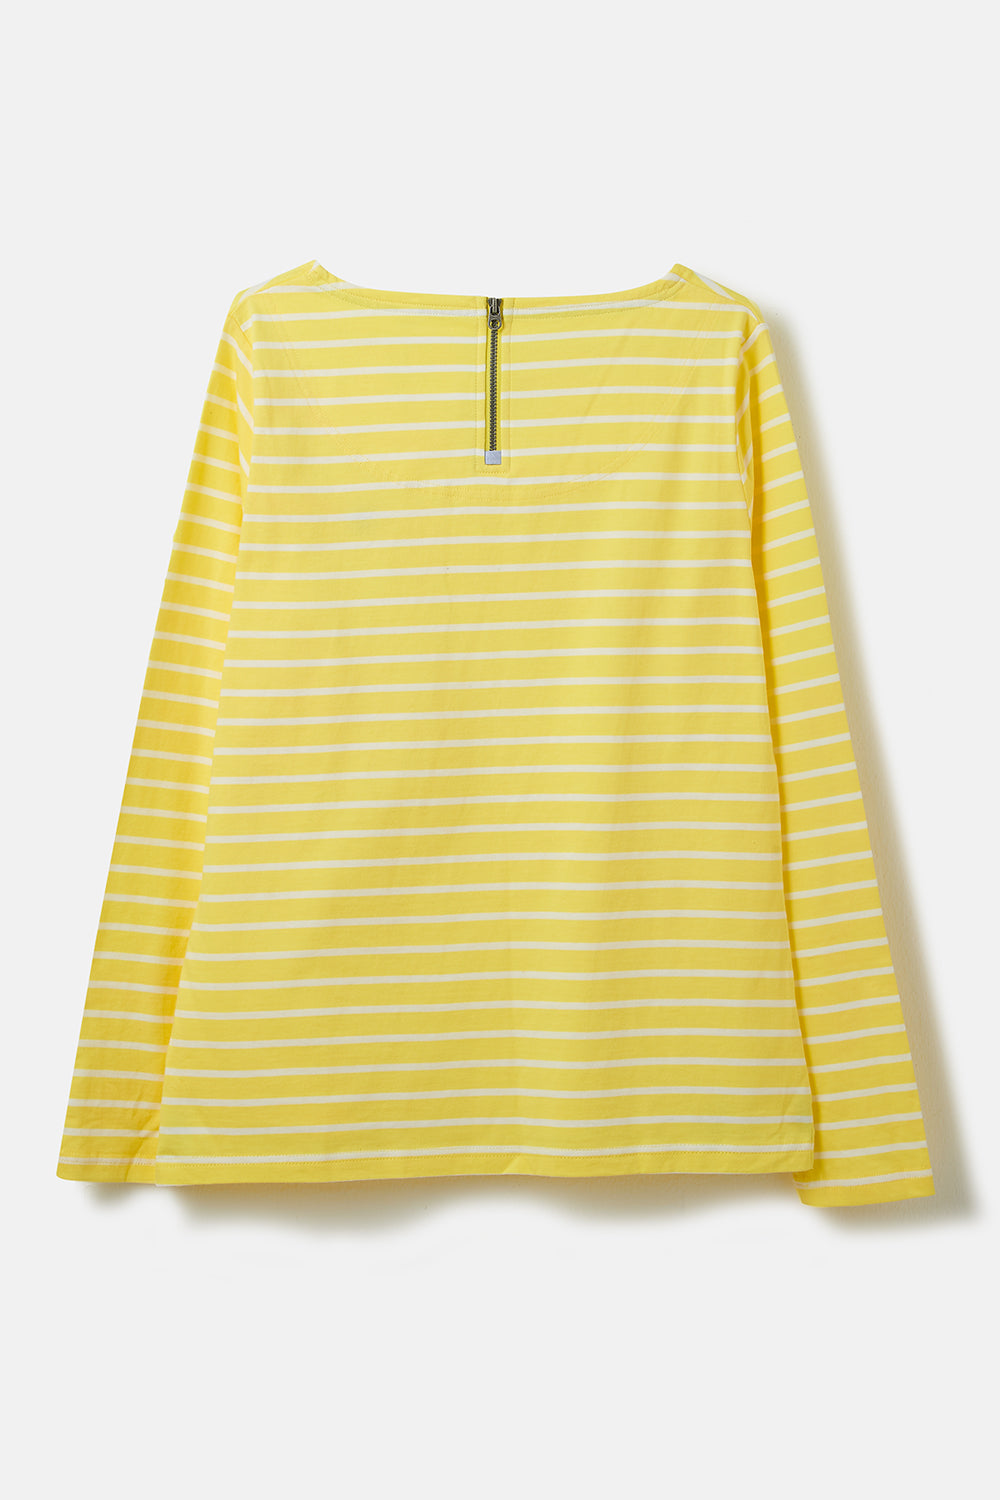 Causeway Breton Top - Lemon Stripe